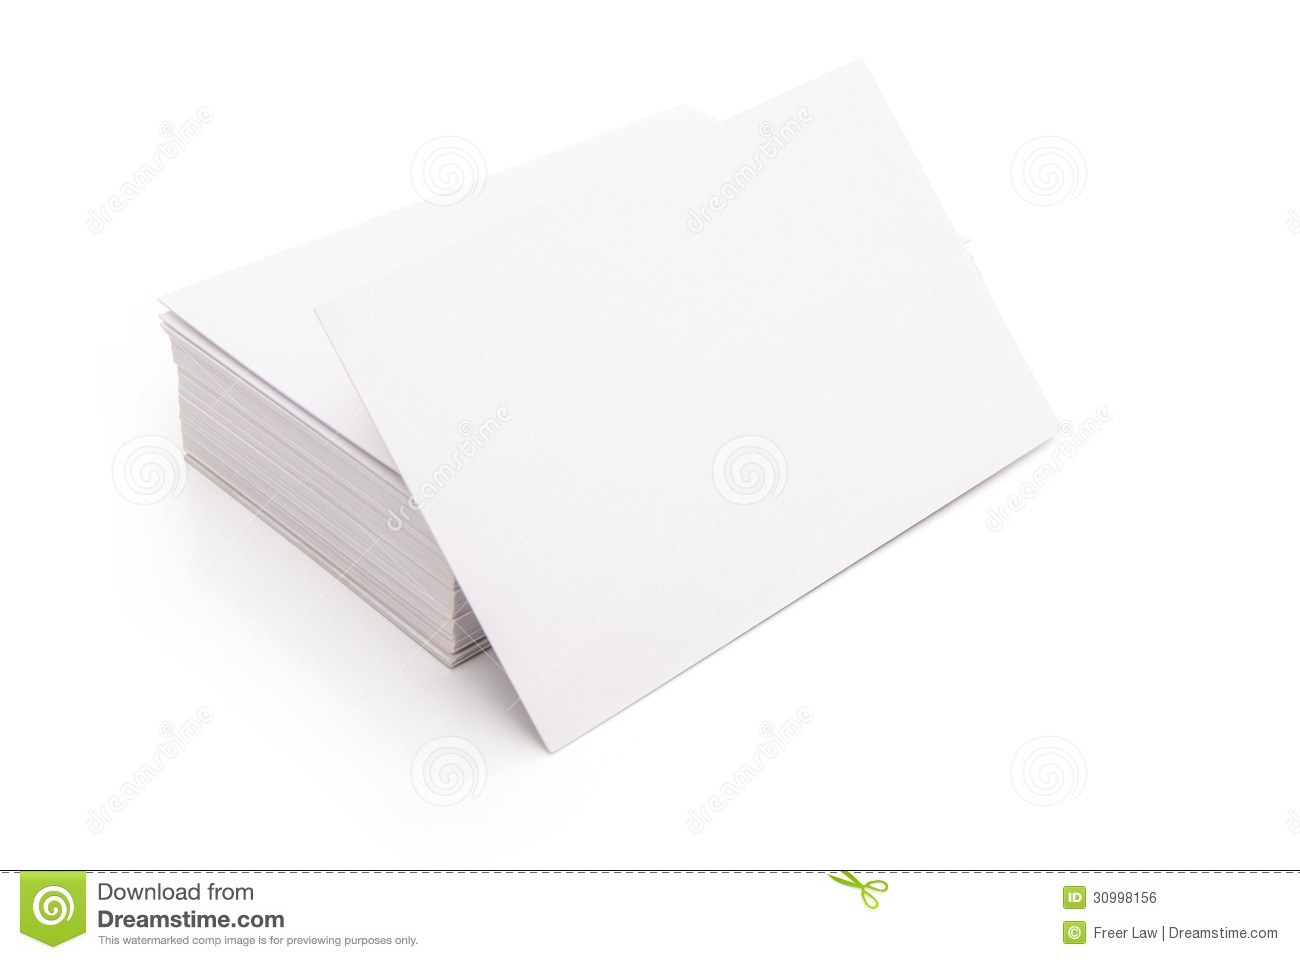 Blank Business Cards Royalty Free Stock Image - Image: 30998156